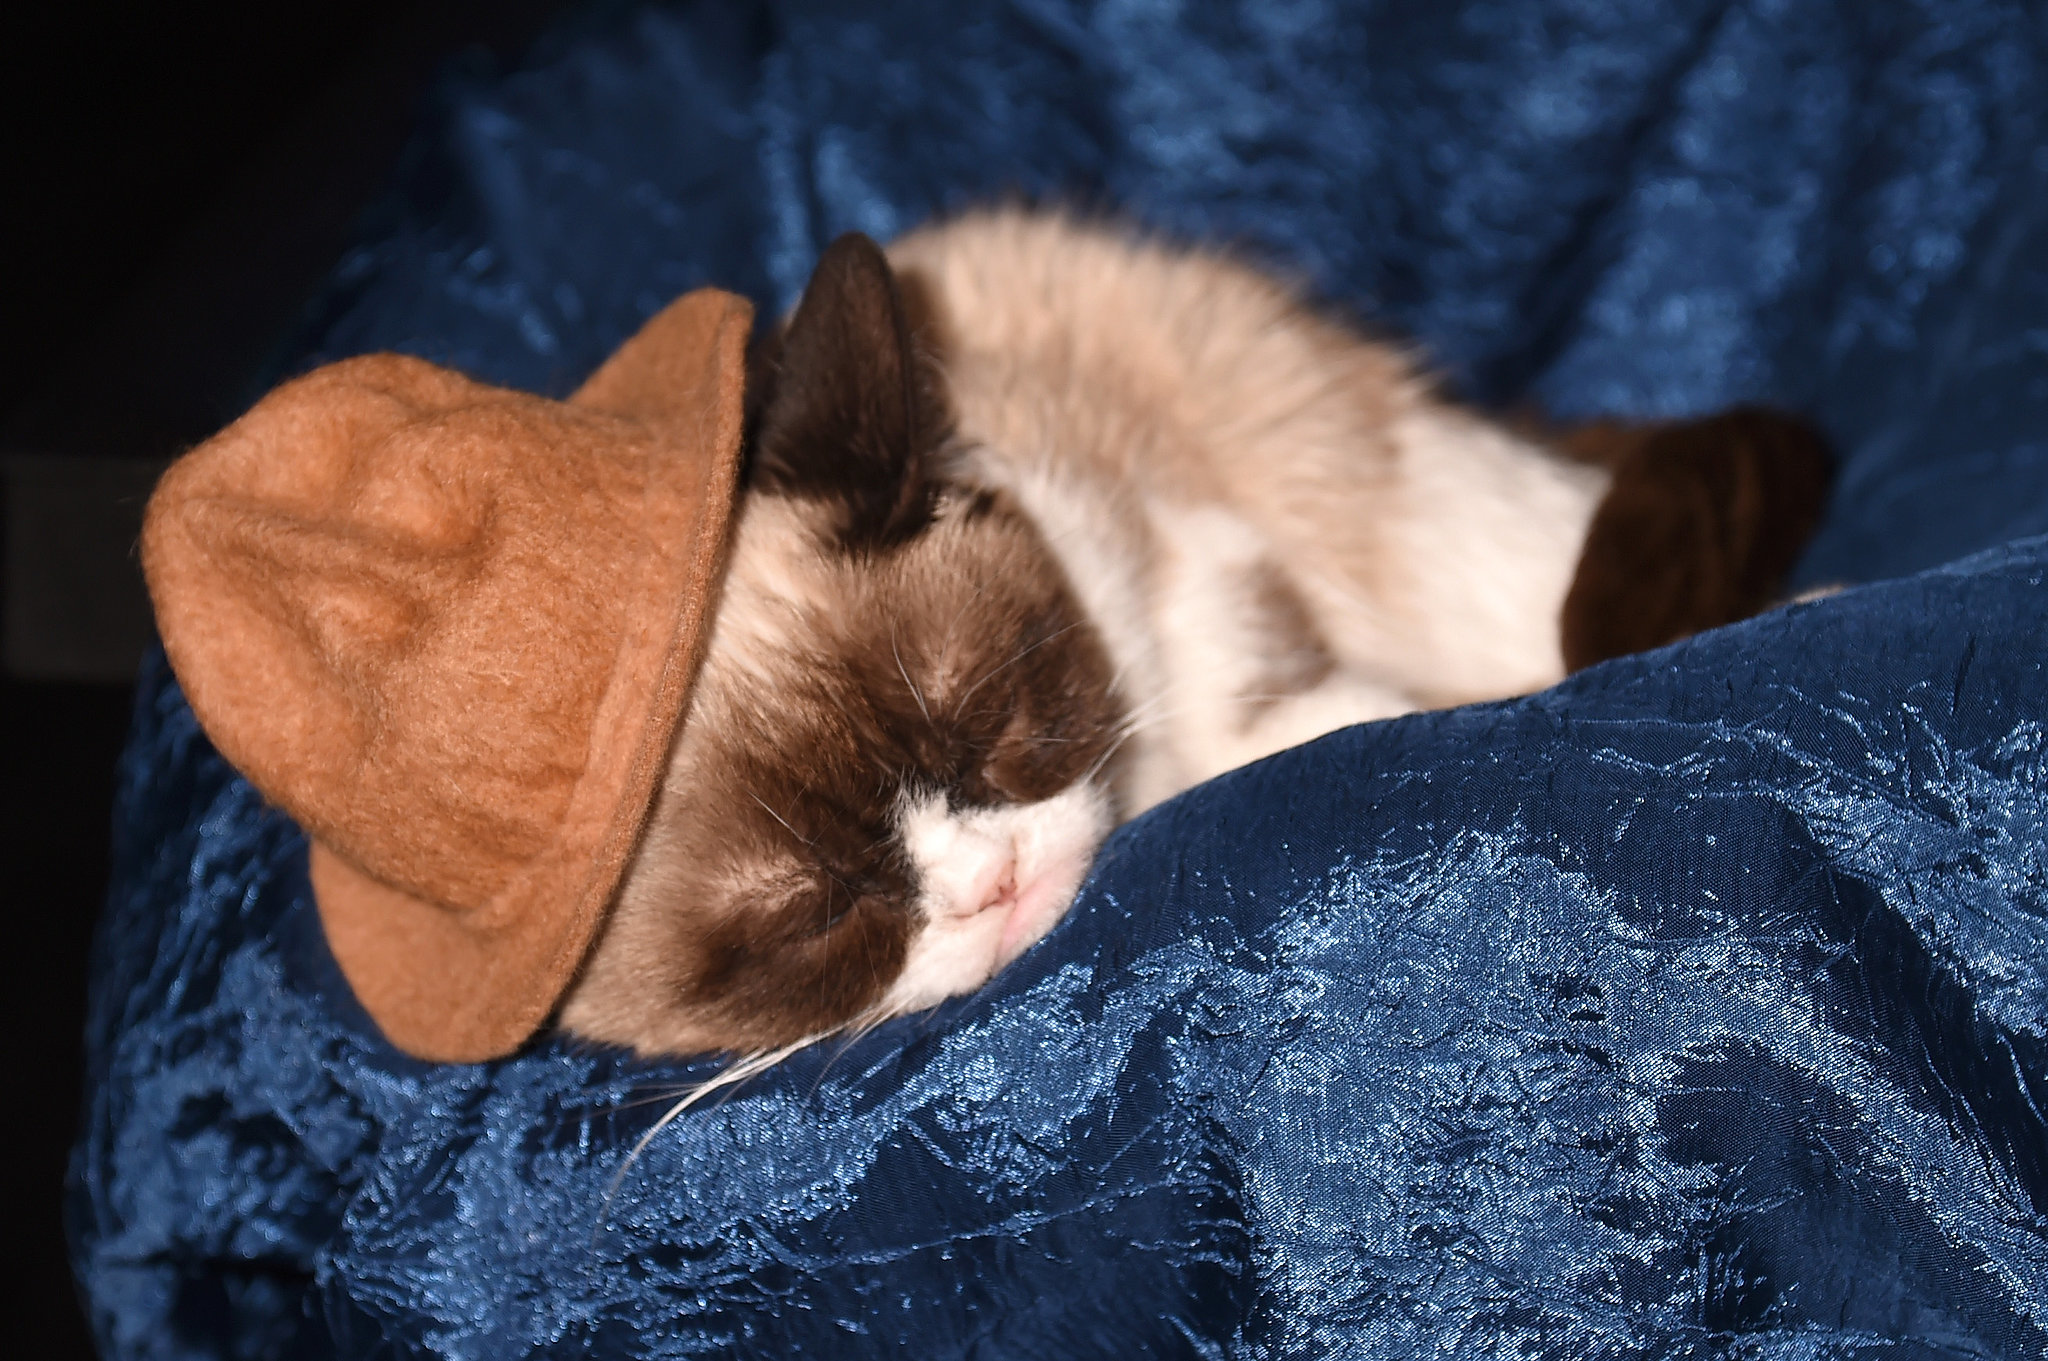 Most Apathetic Guest in a Sleeping Role: Grumpy Cat